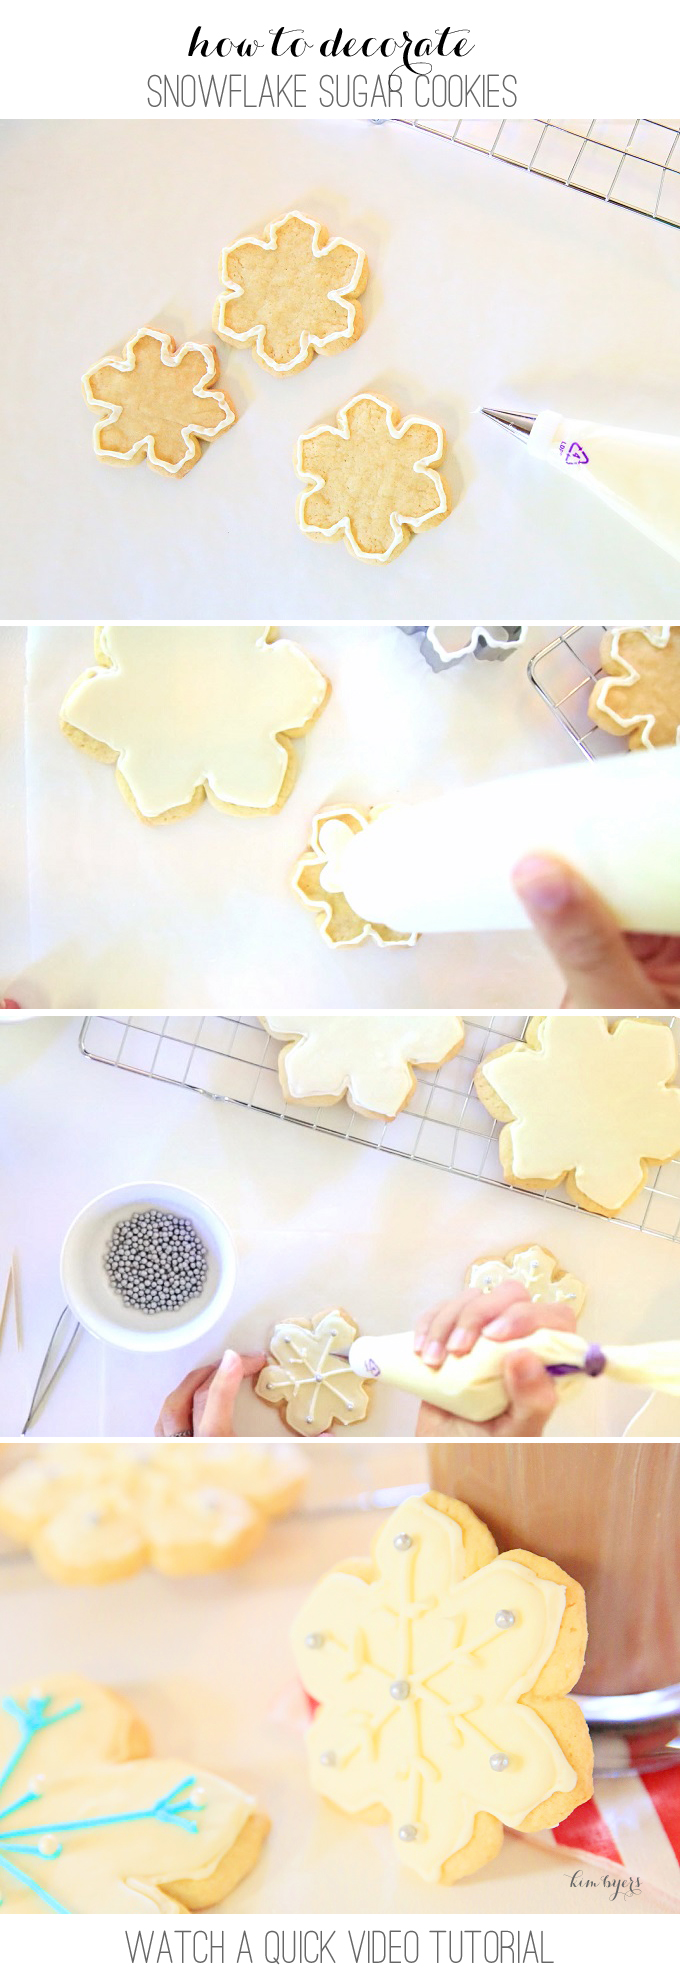 2-How-To-Decorate-Snowflake-Cookies-Kim-Byers